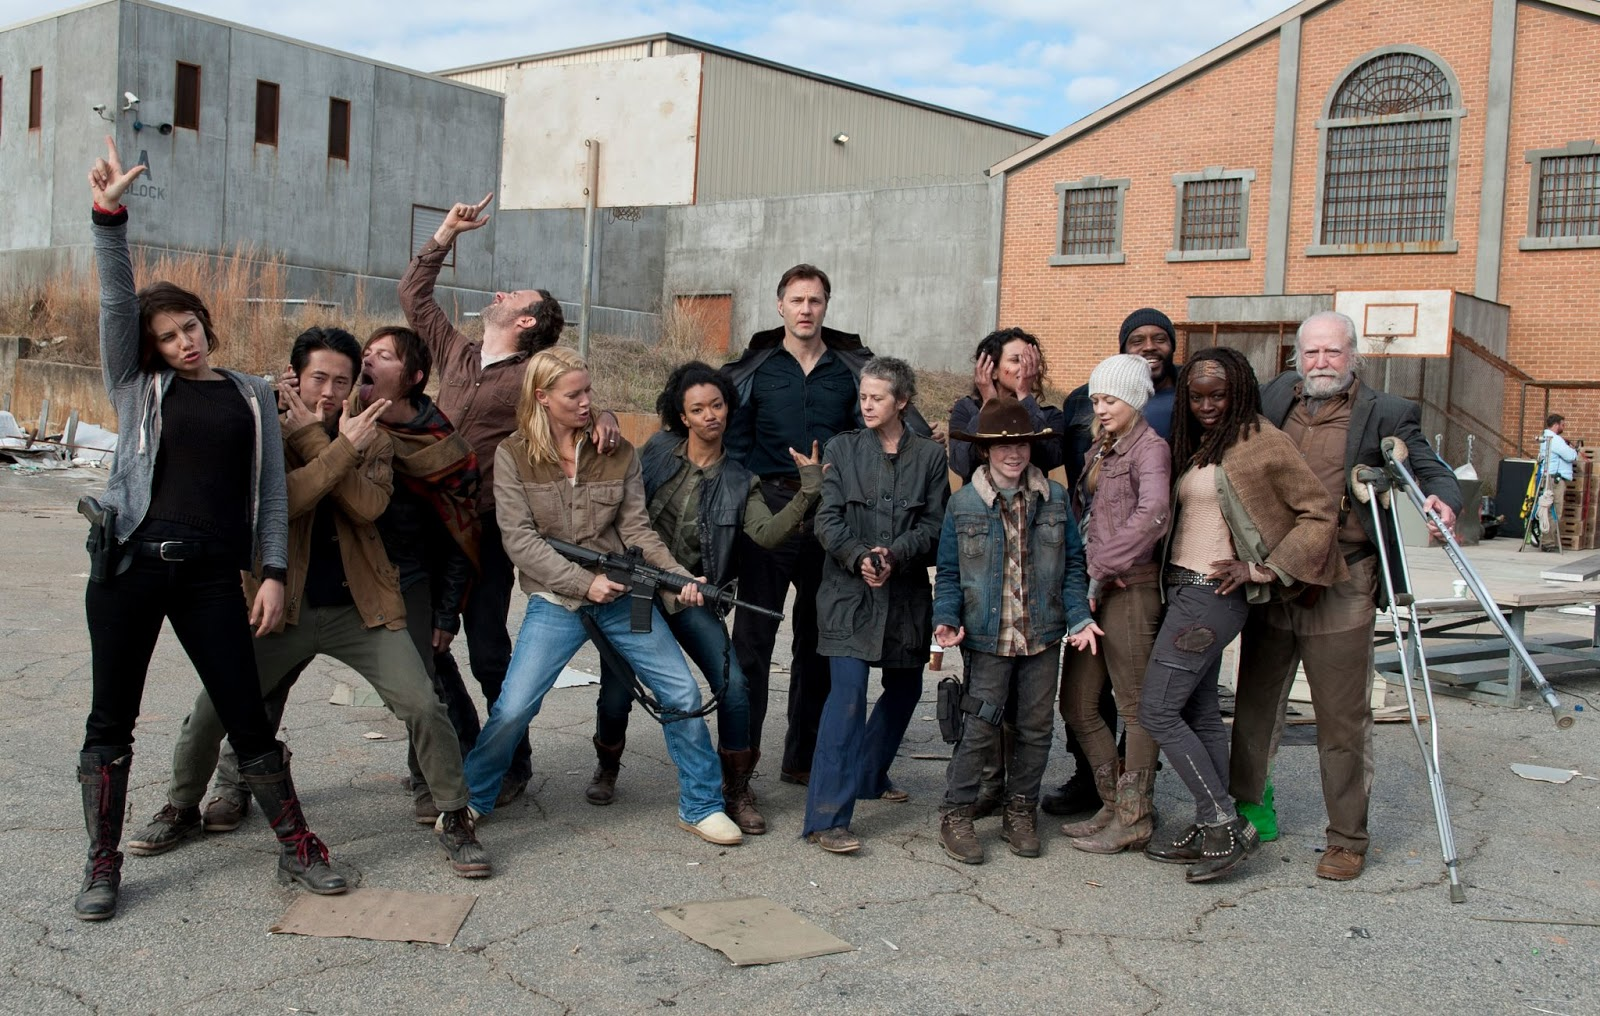 El reparto de The Walking Dead, en un gracioso posado durante la tercera temporada